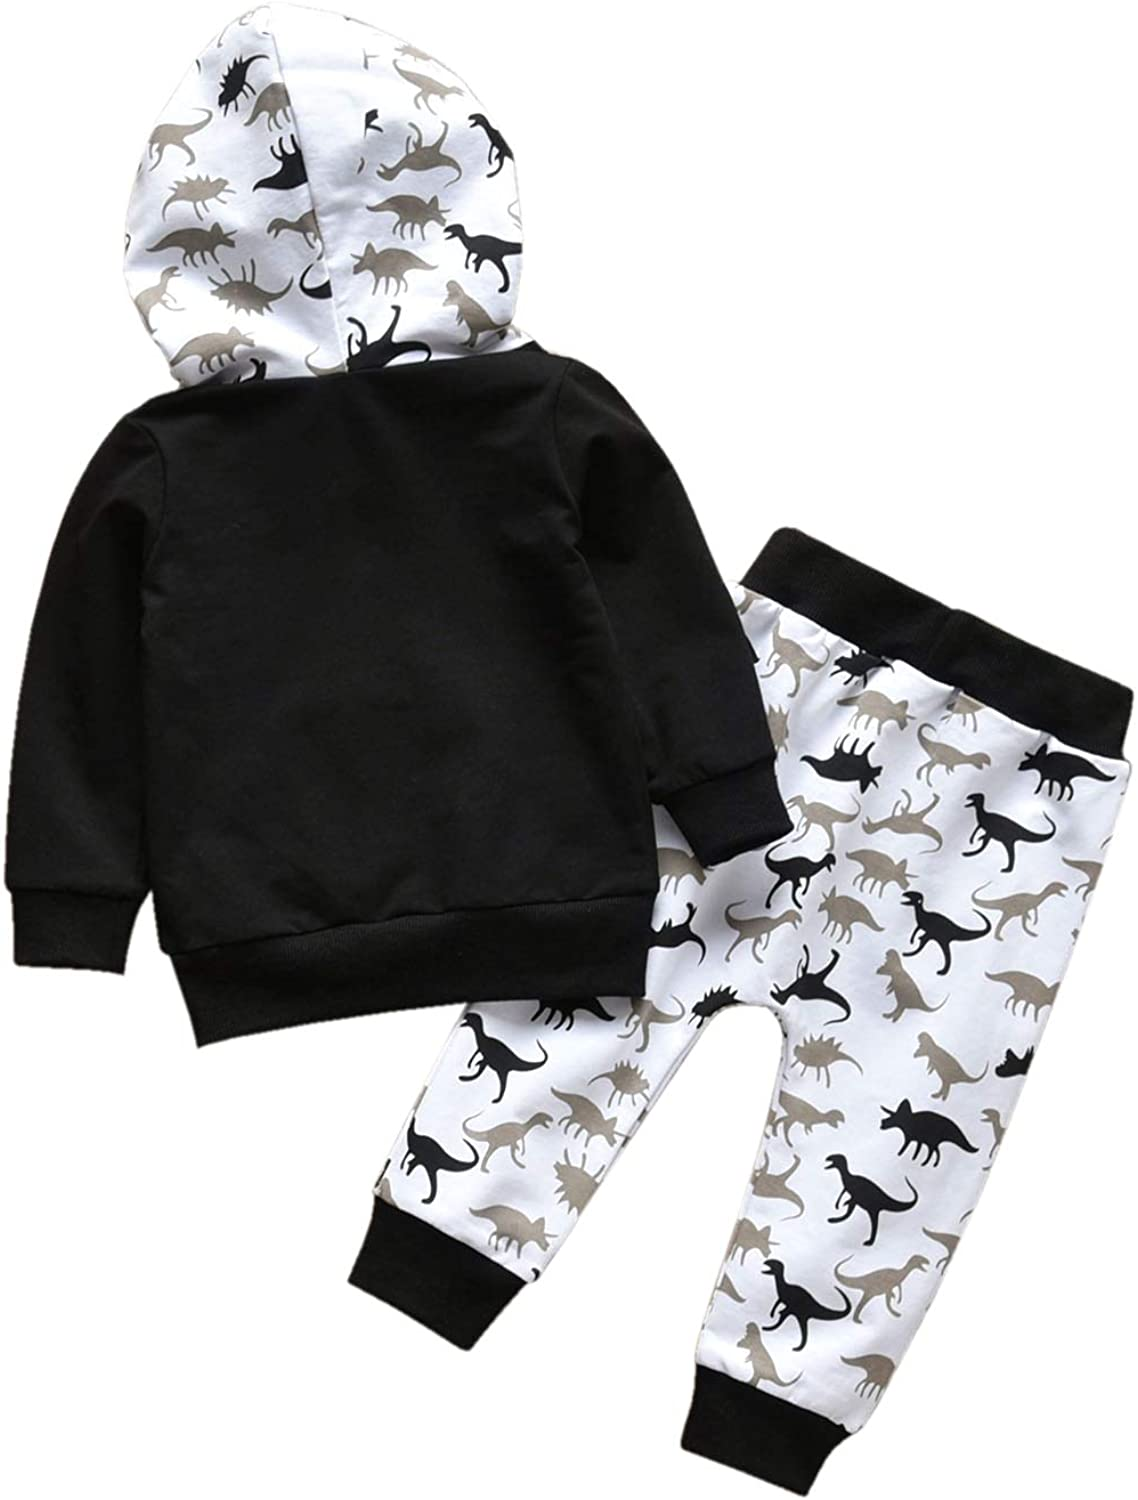 Toddler Infant Baby Boy Clothes Animal Style Long Sleeve Hoodie Tops Sweatsuit Pants Outfit Set